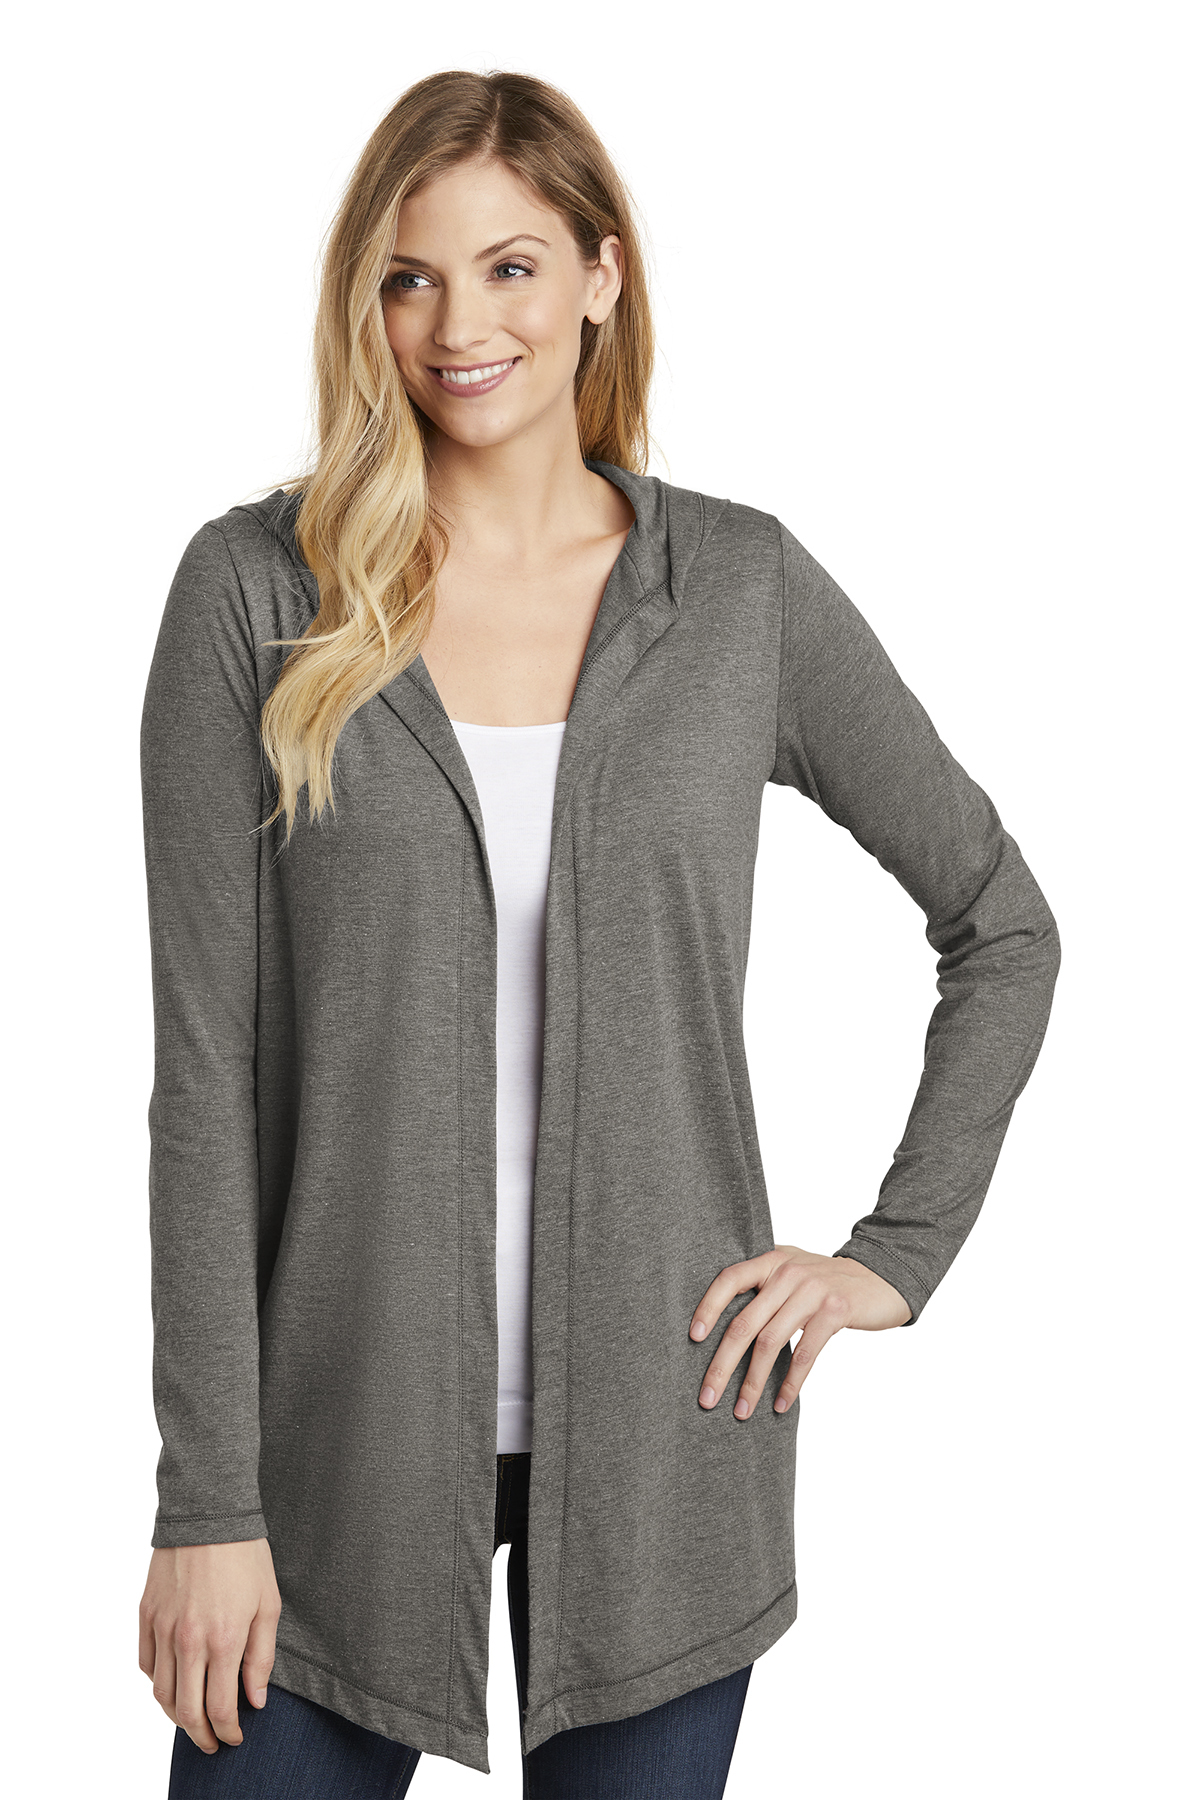 District DT156 - Women's Perfect Tri Hooded Cardigan